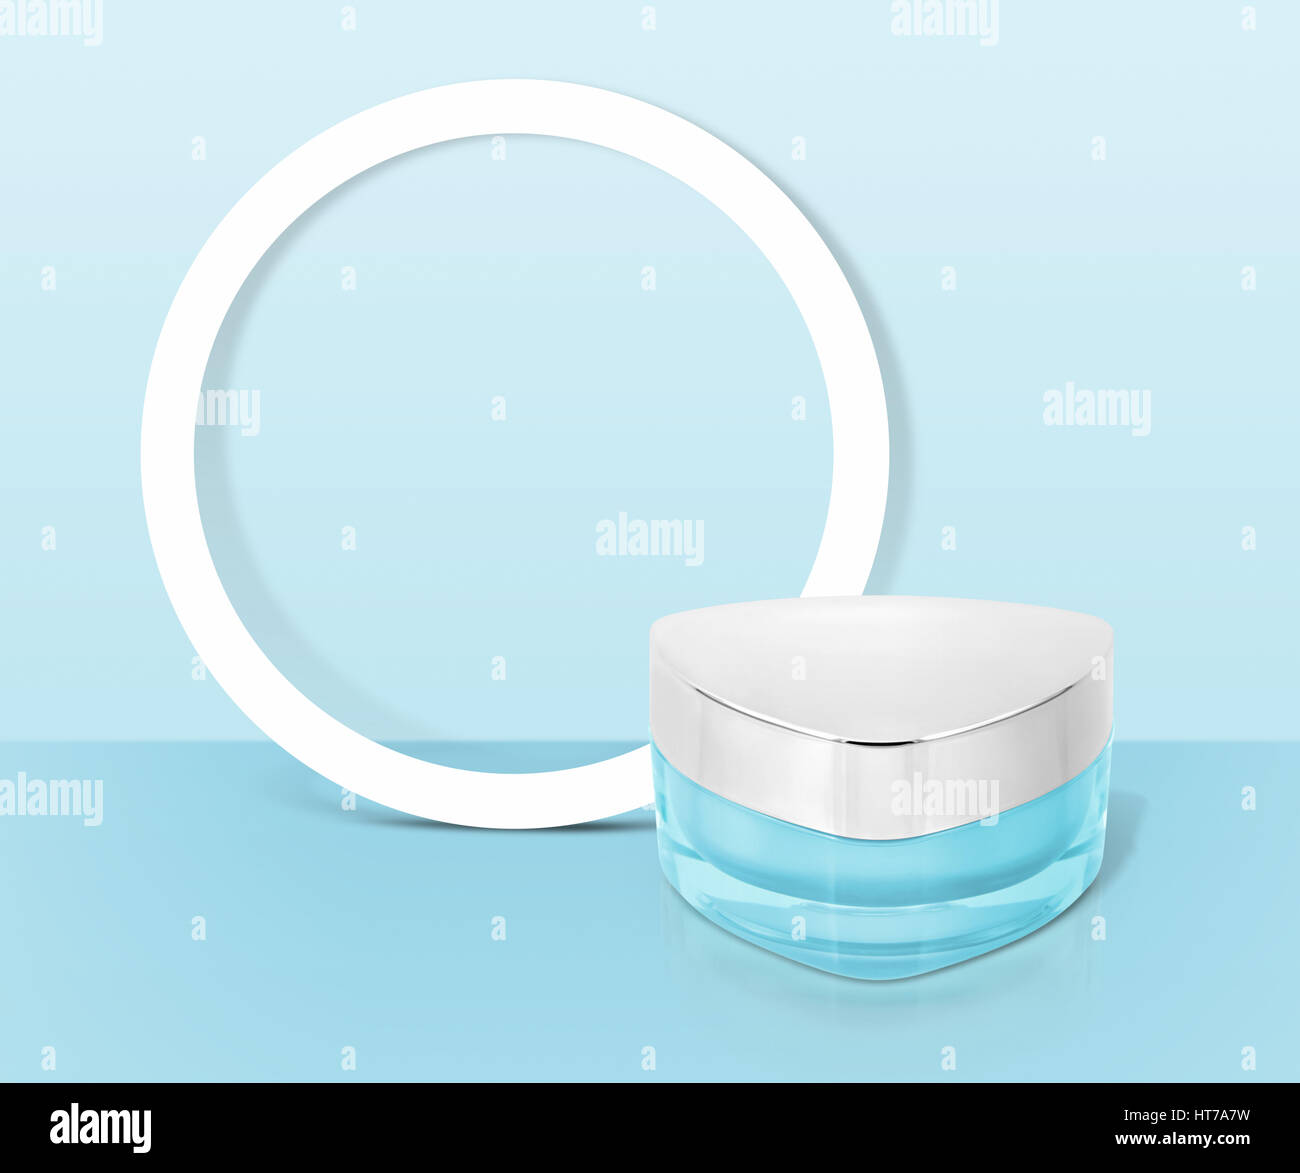 Cosmetics Promotion Stockfotos & Cosmetics Promotion Bilder - Alamy